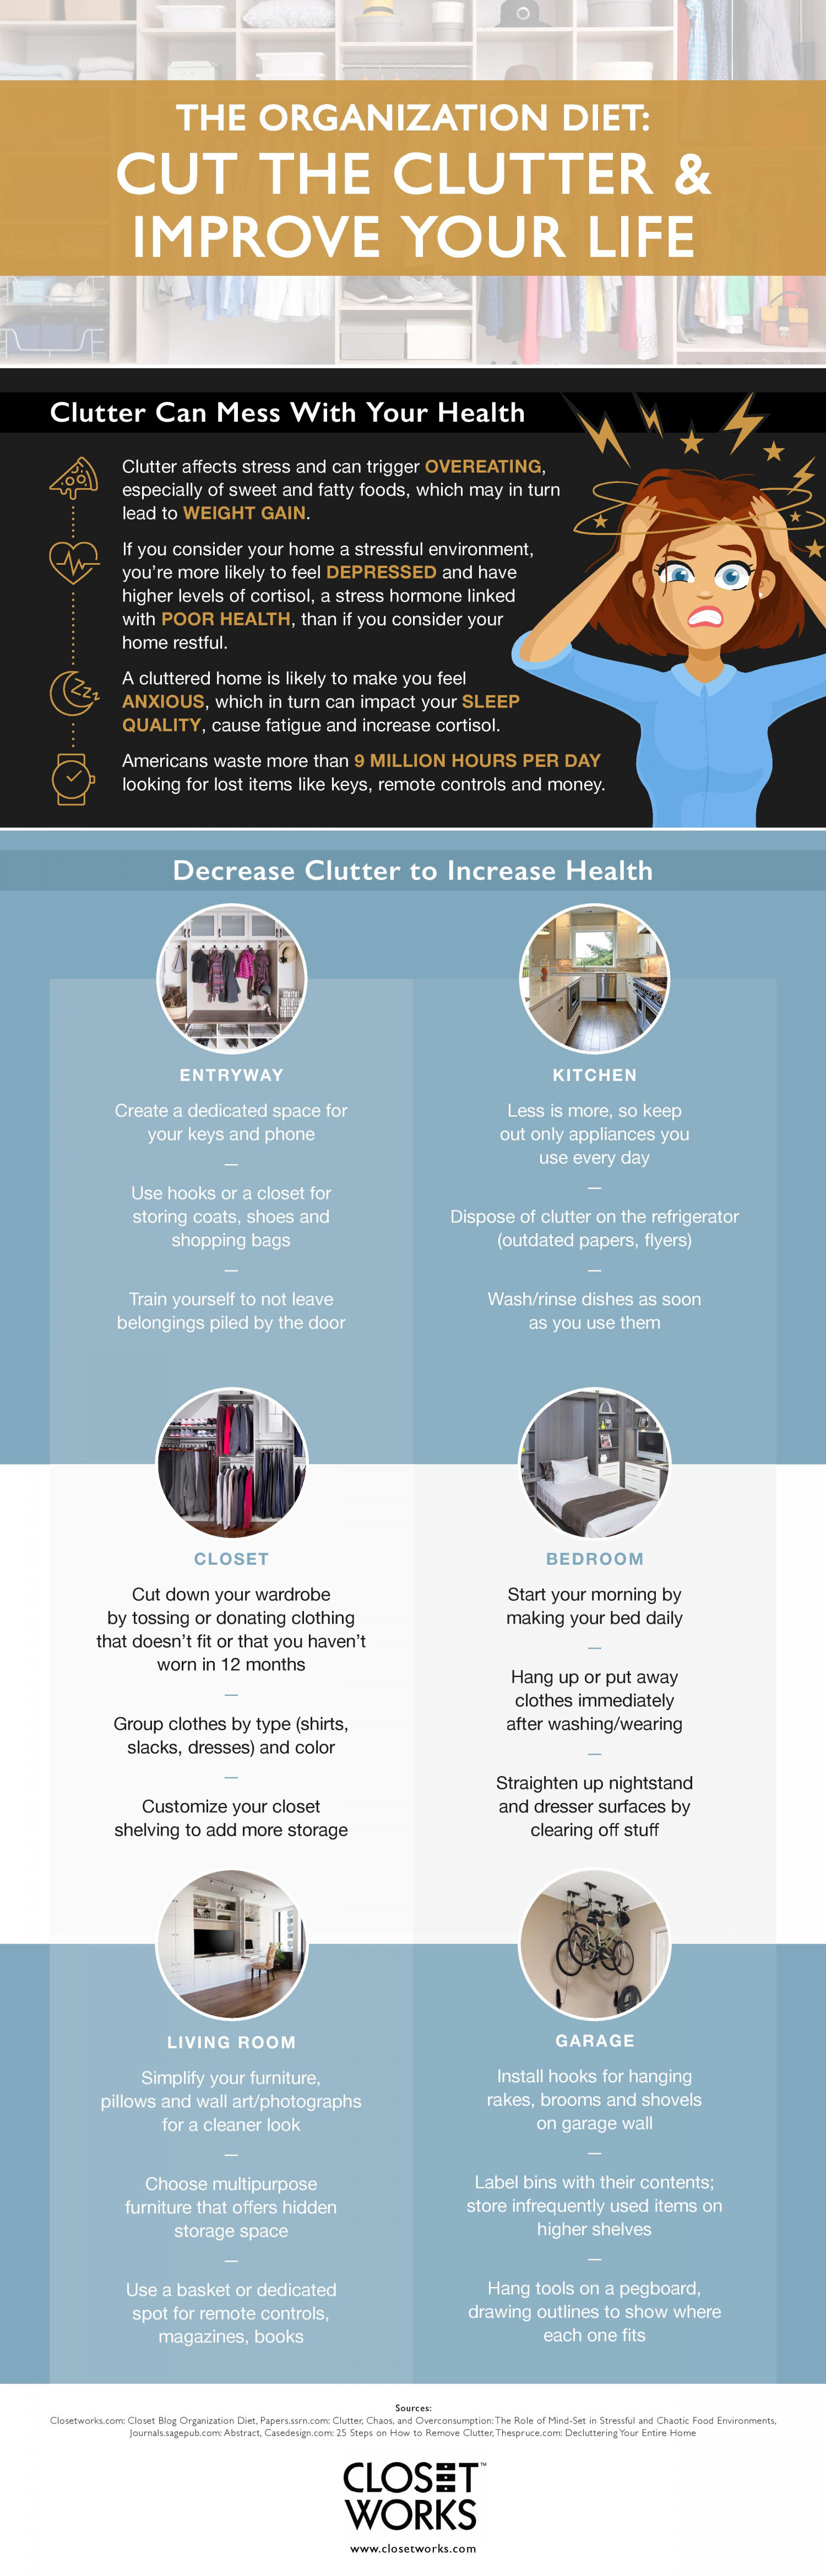 The Organization Diet: Cut The Clutter & Improve Your Life Infographic